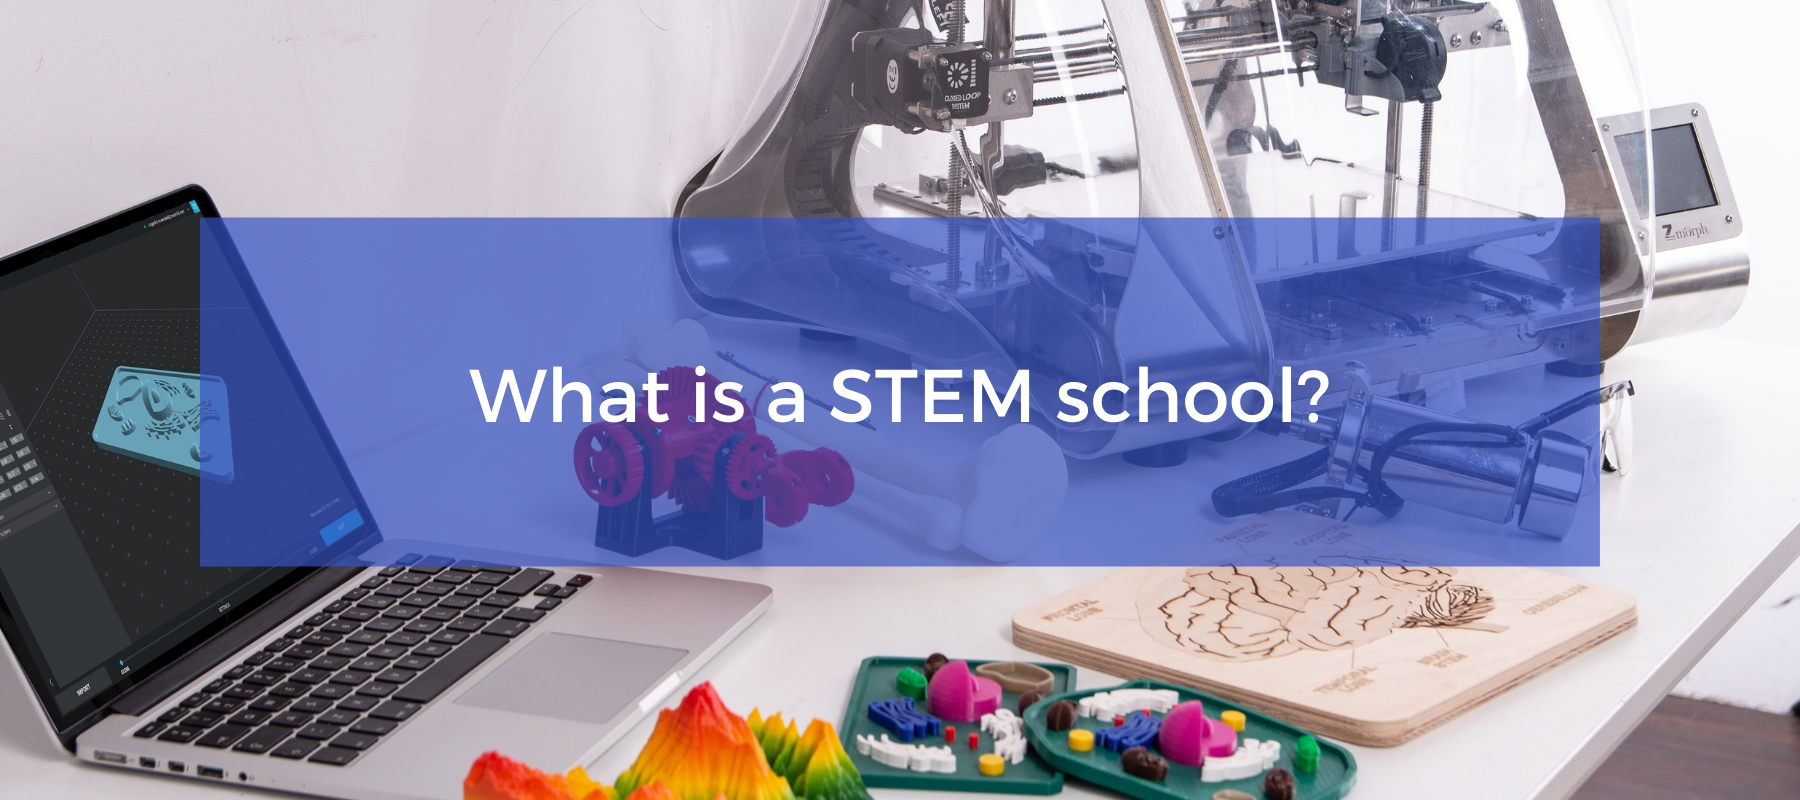 What is a stem school science technology engineering and mathematics.